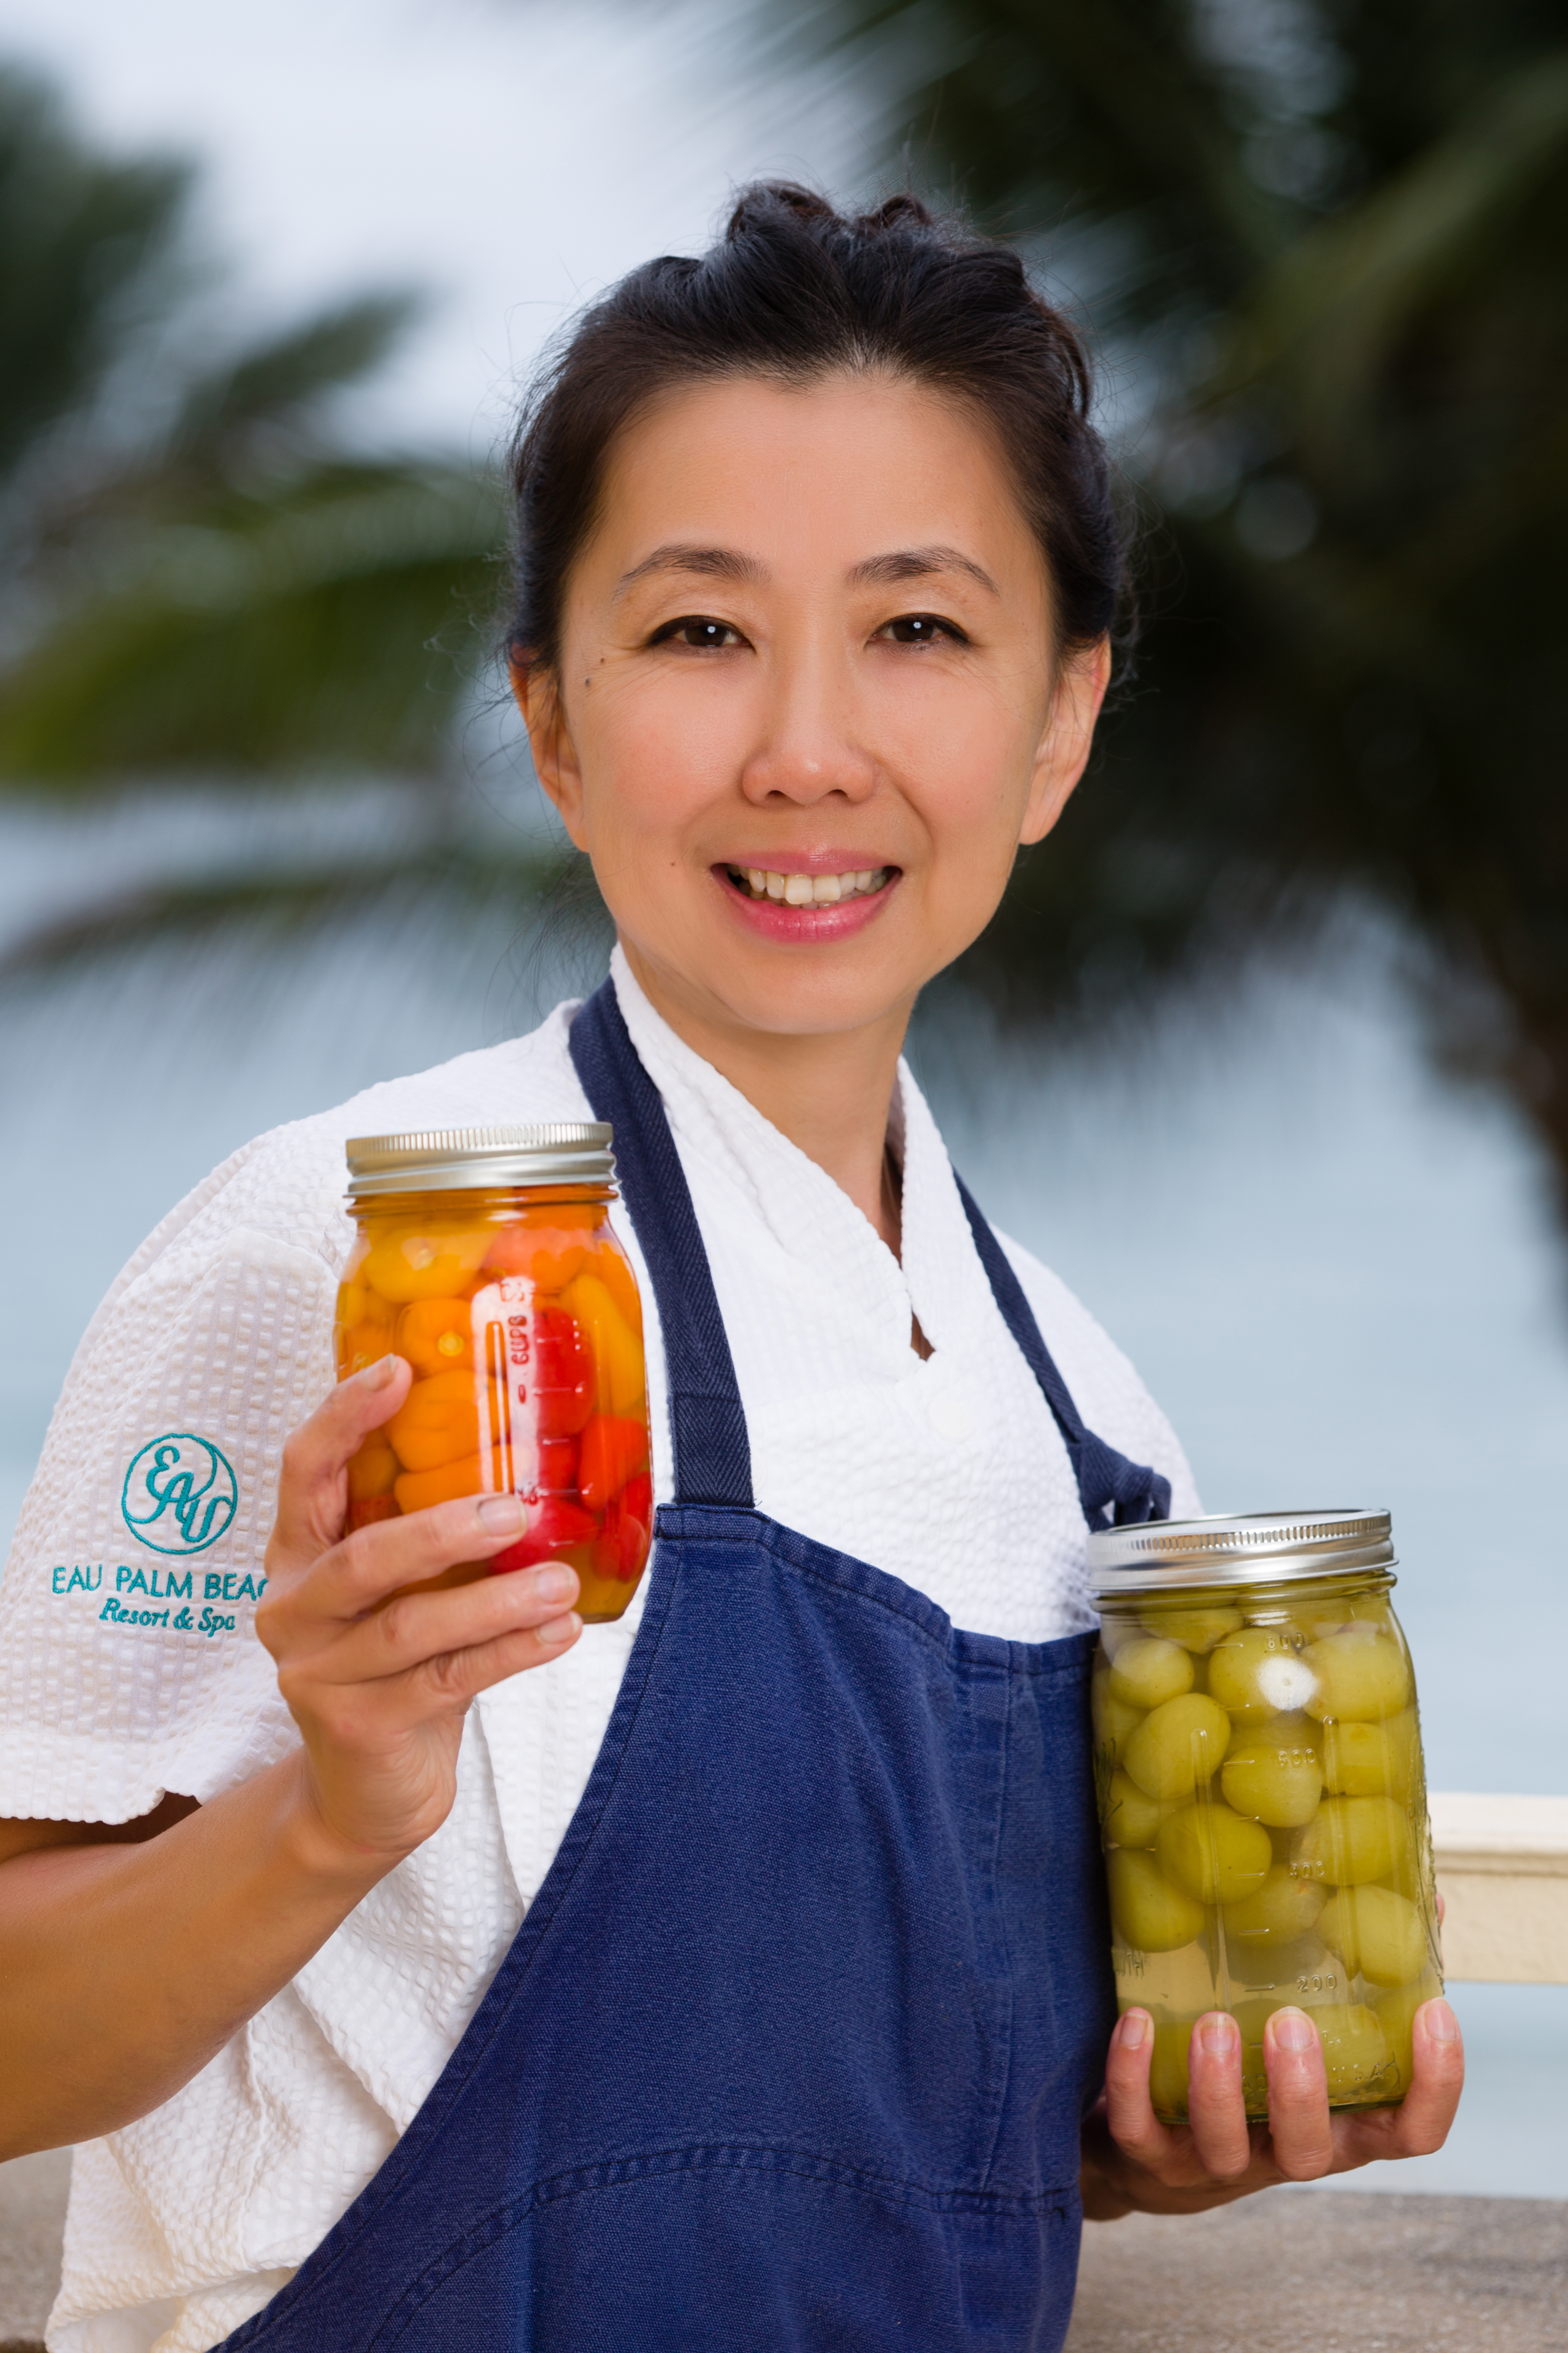 Chef Manlee Siu